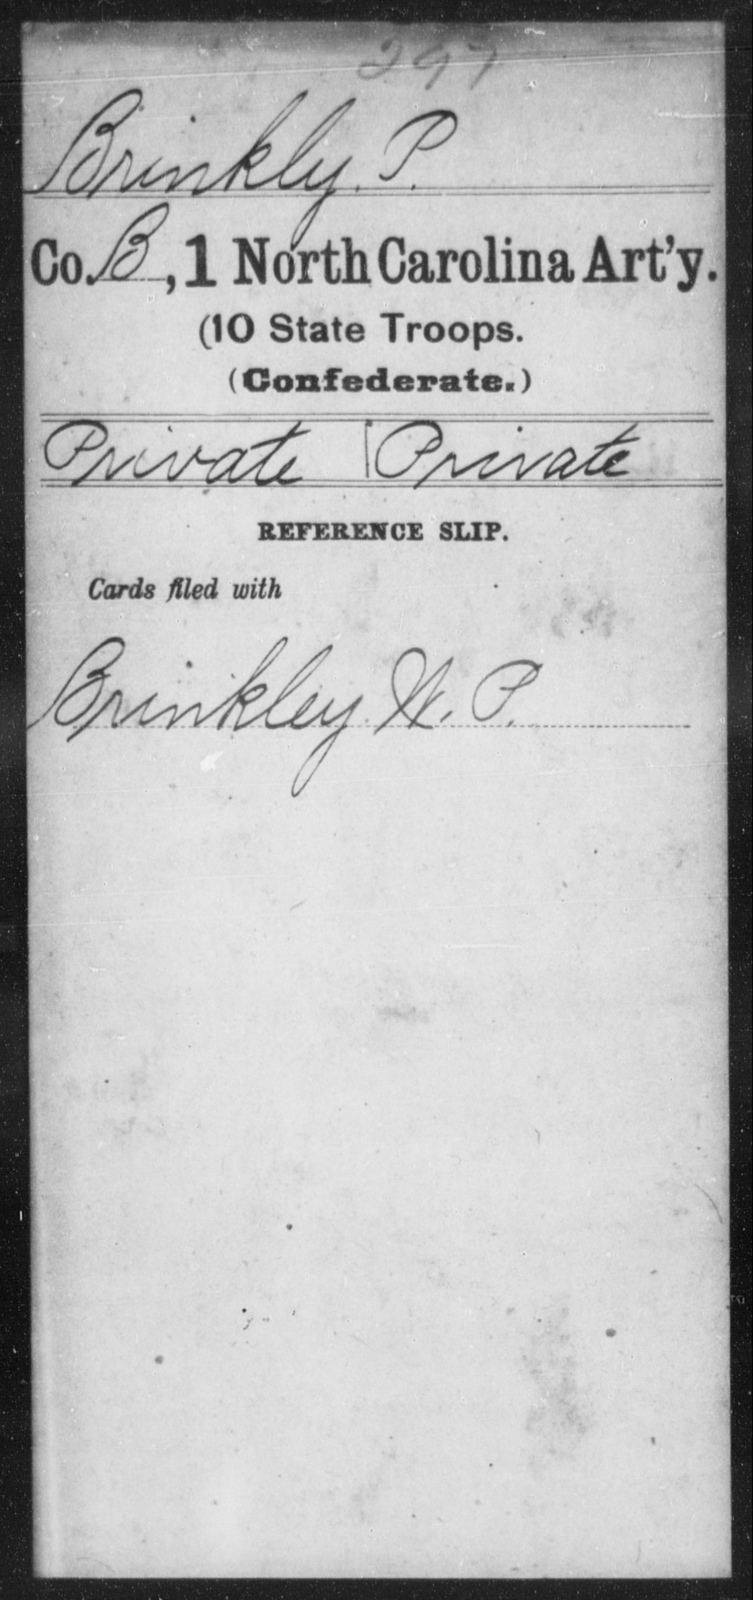 Brinkly, P - First Artillery (10th State Troops)